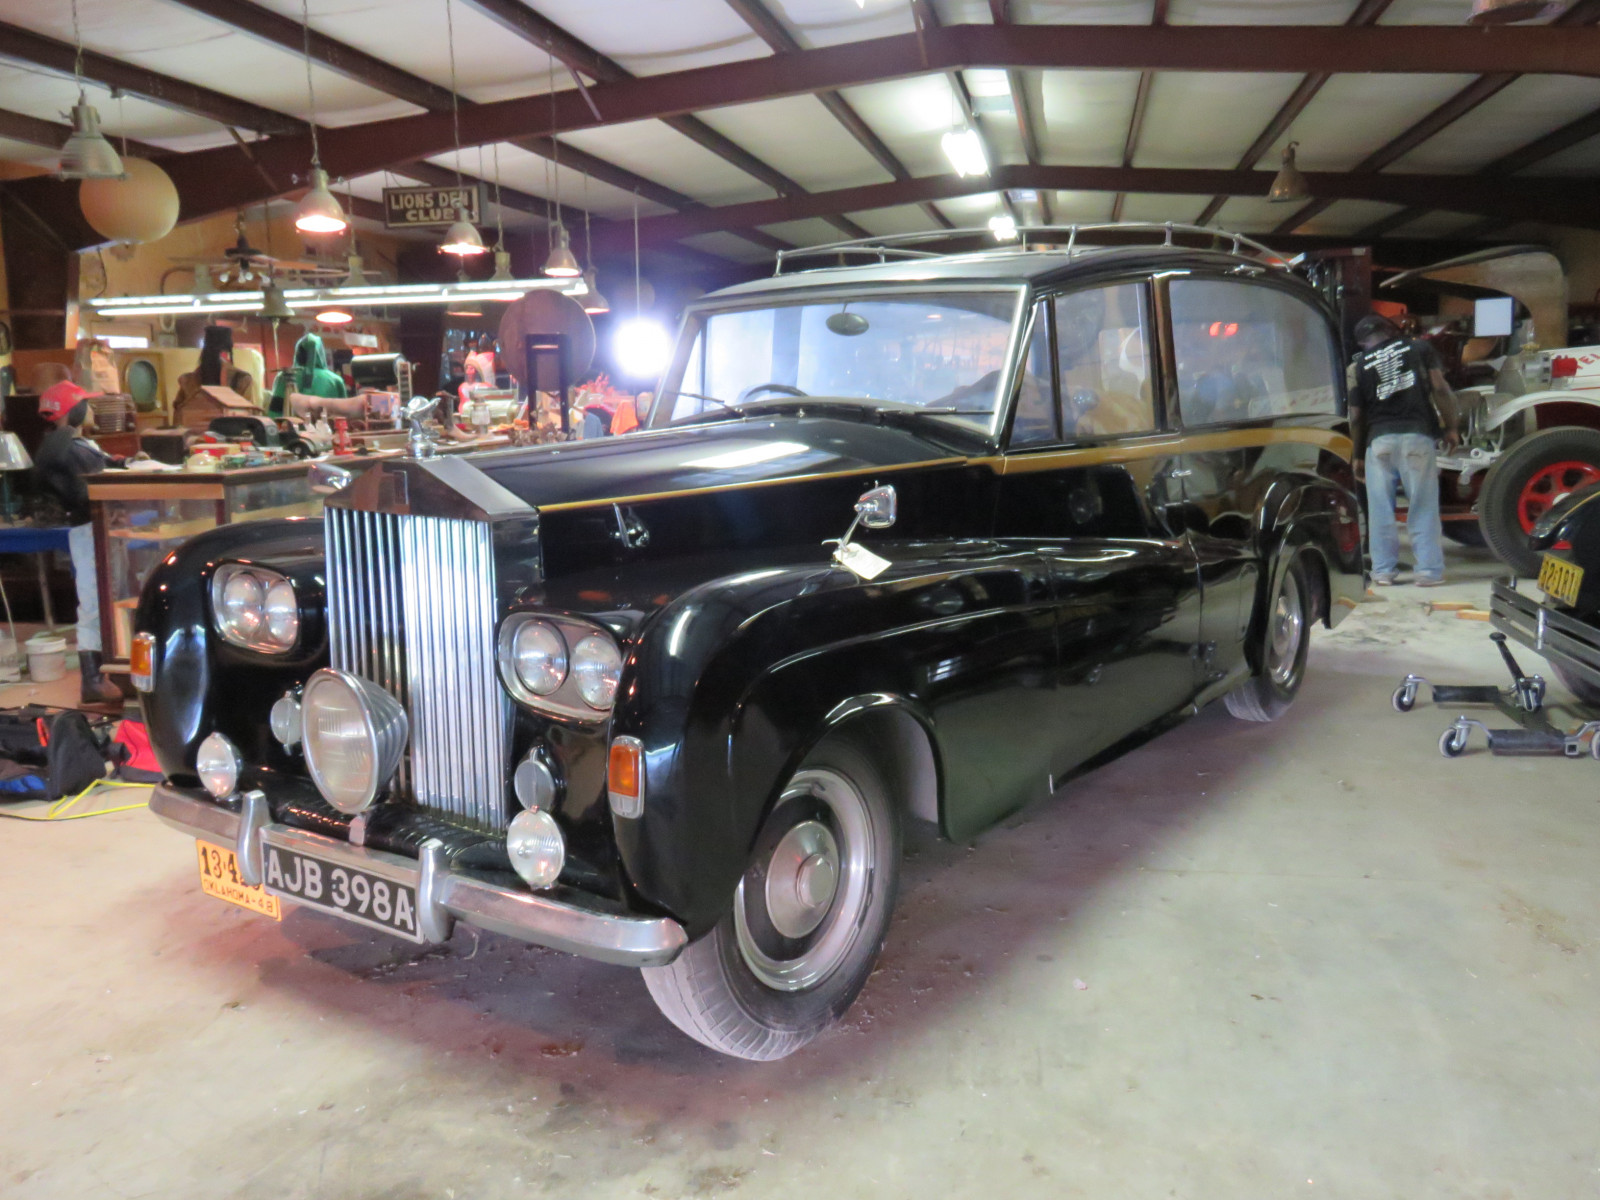 1948 Rolls Royce Silver Wraith Hearse - Image 1